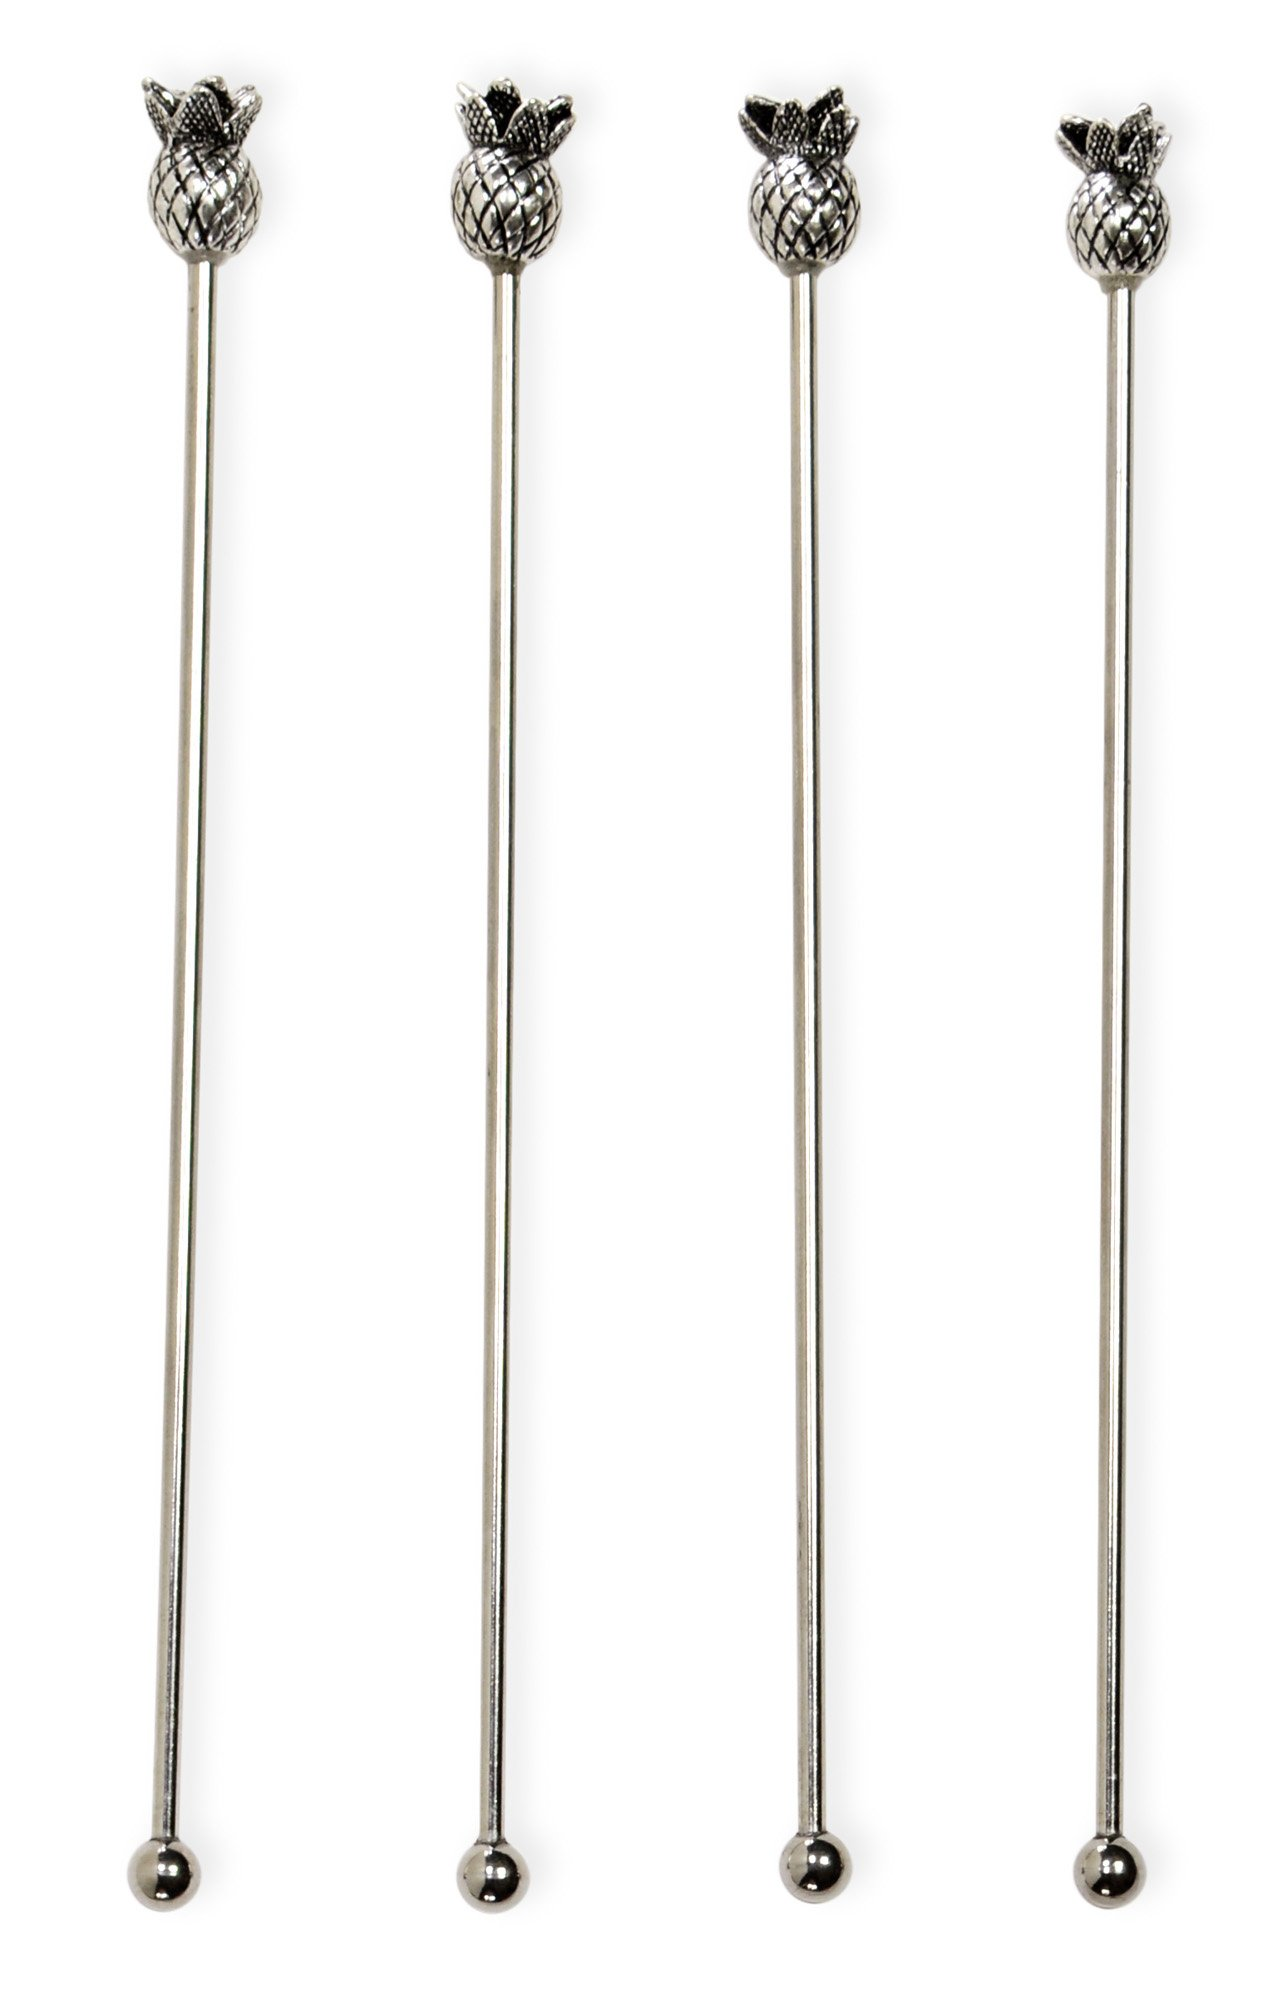 Boston International Stainless Steel Cocktail/Drink Stirrers (Set of 4), Pineapple, 7.5''